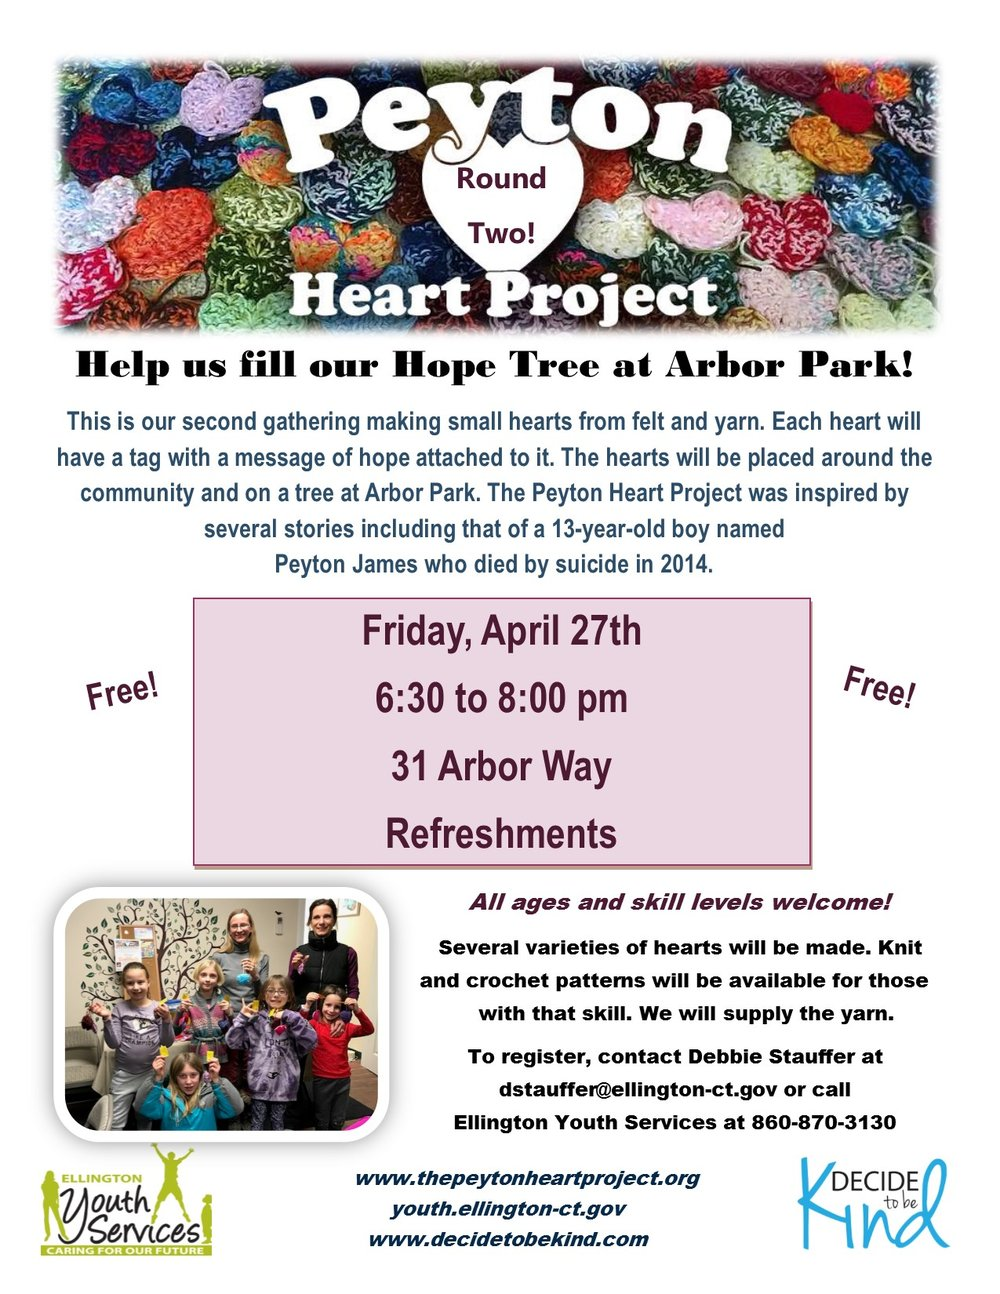 Peyton Heart Project Flyer 2nd Night.jpg